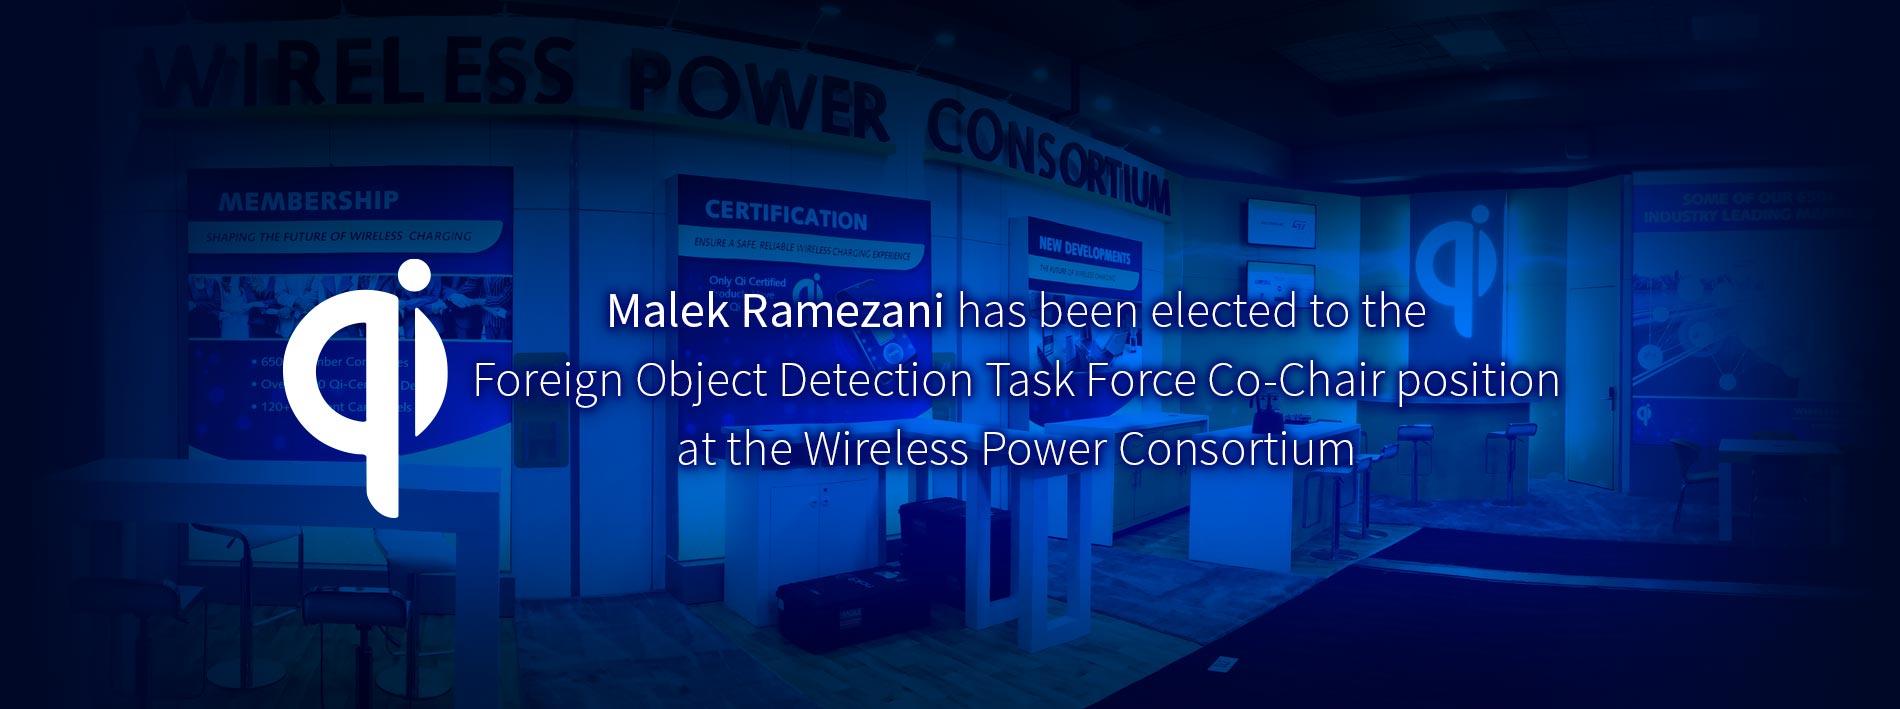 Malek Ramezani has been elected to the Foreign Object Detection Task Force co-chair position at the WPC.